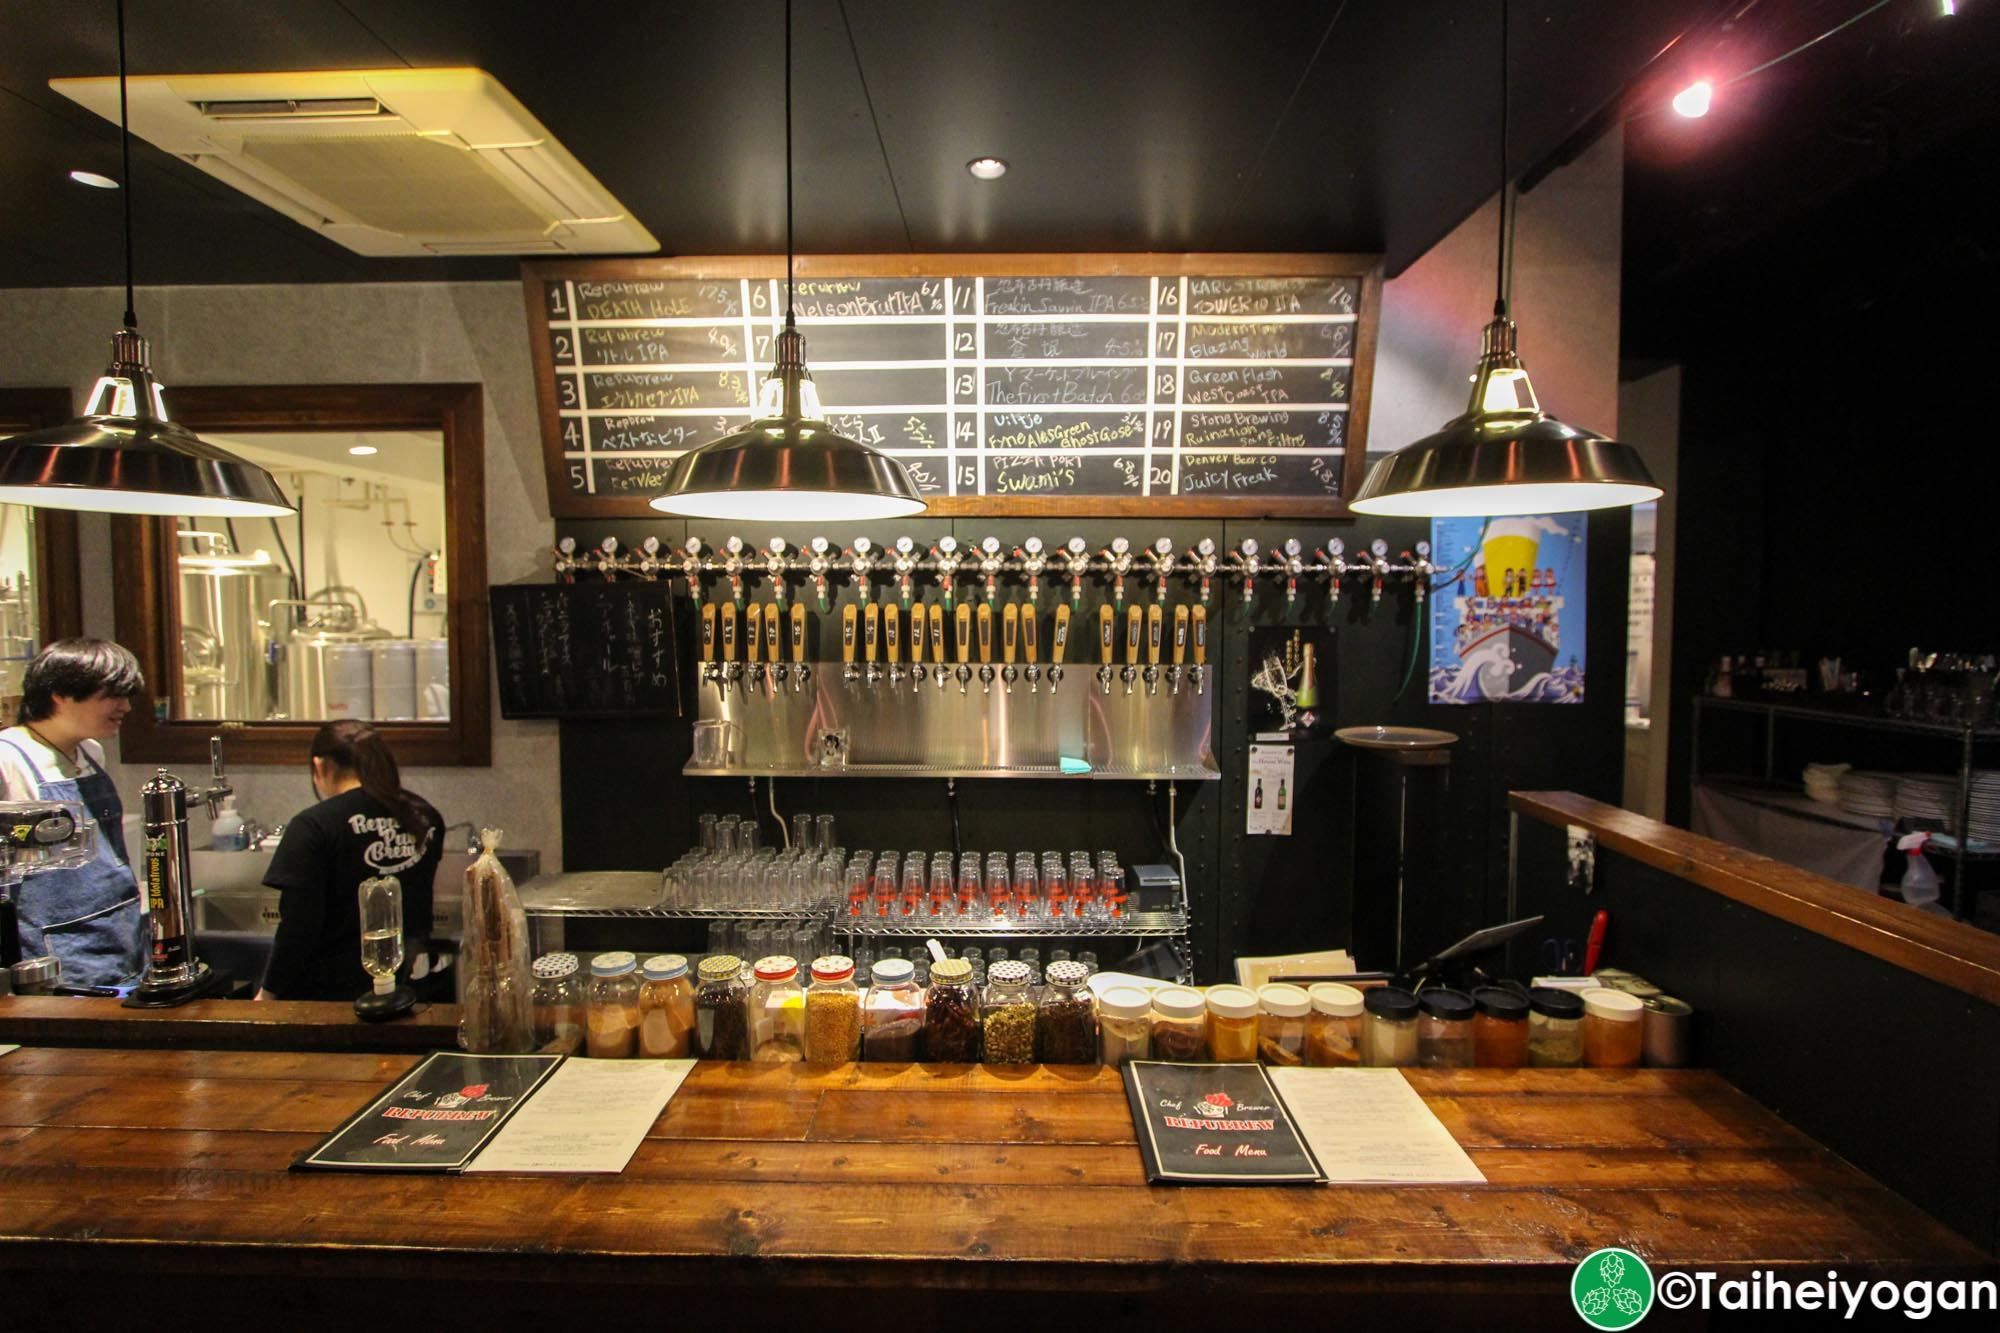 Repubrew - Interior - Beer Taps